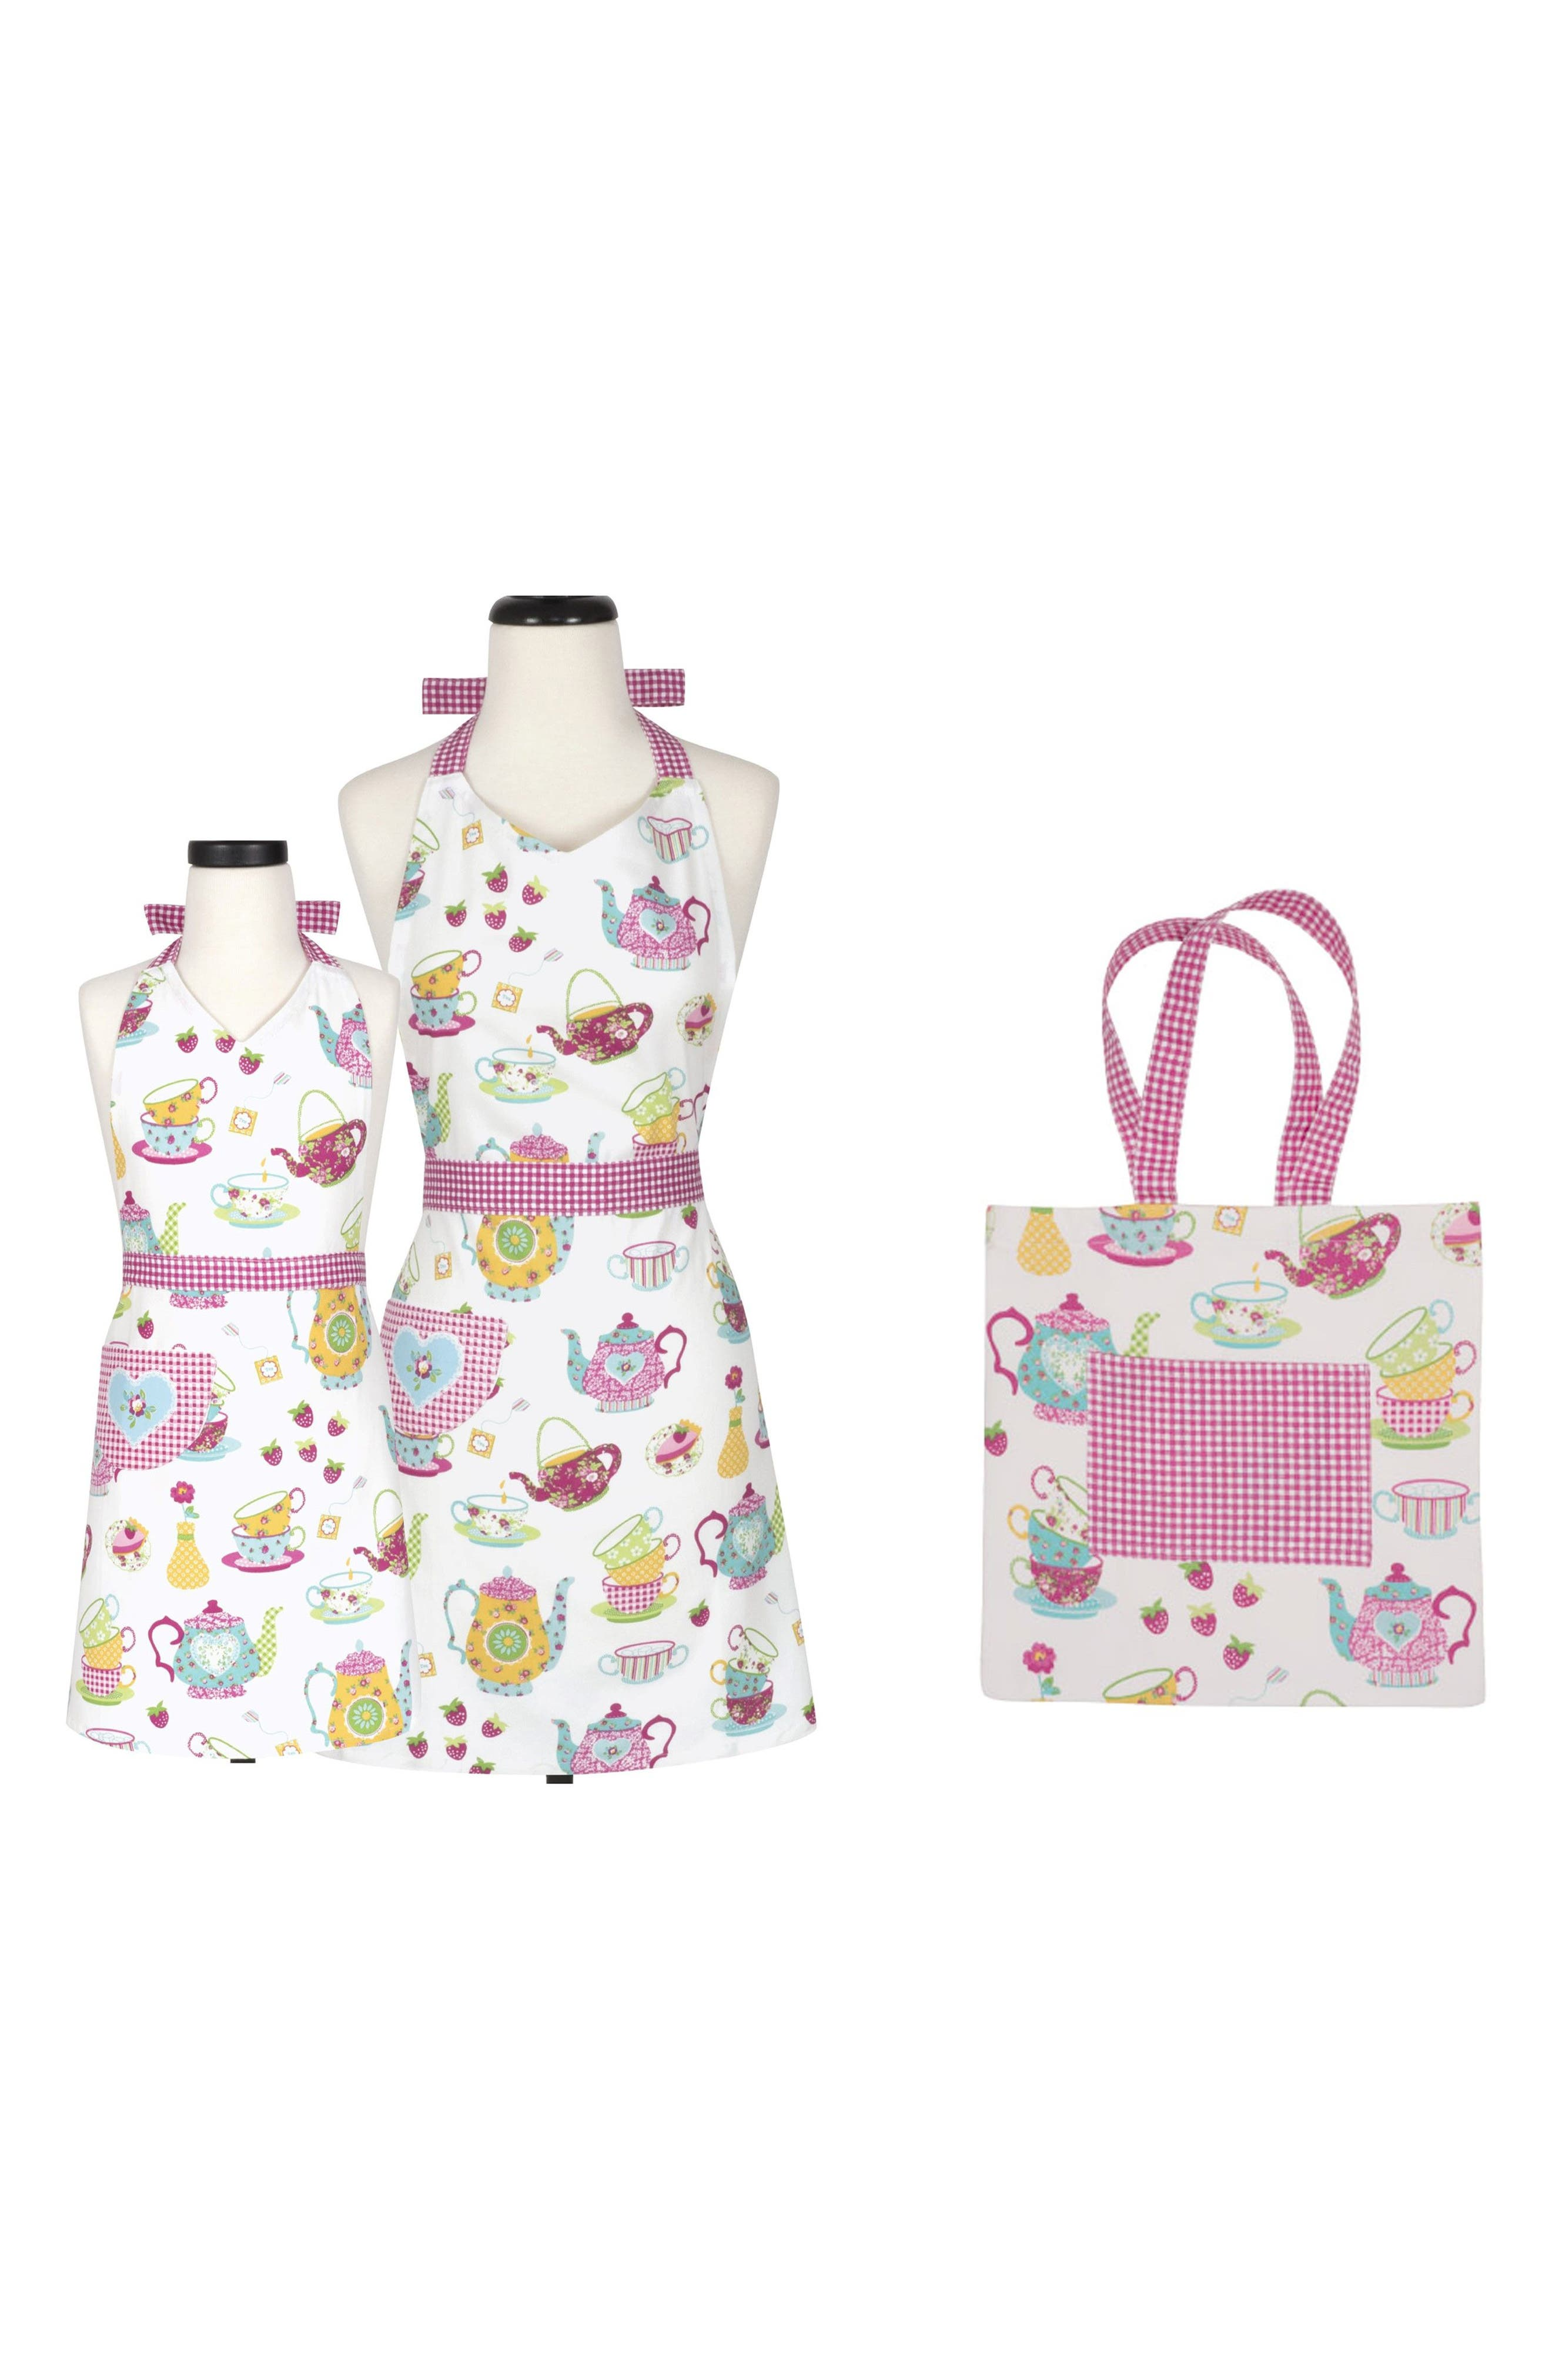 Handstand KidsTeatime Print Adult & Kid Apron Gift Set with Tote,                             Main thumbnail 1, color,                             Pink